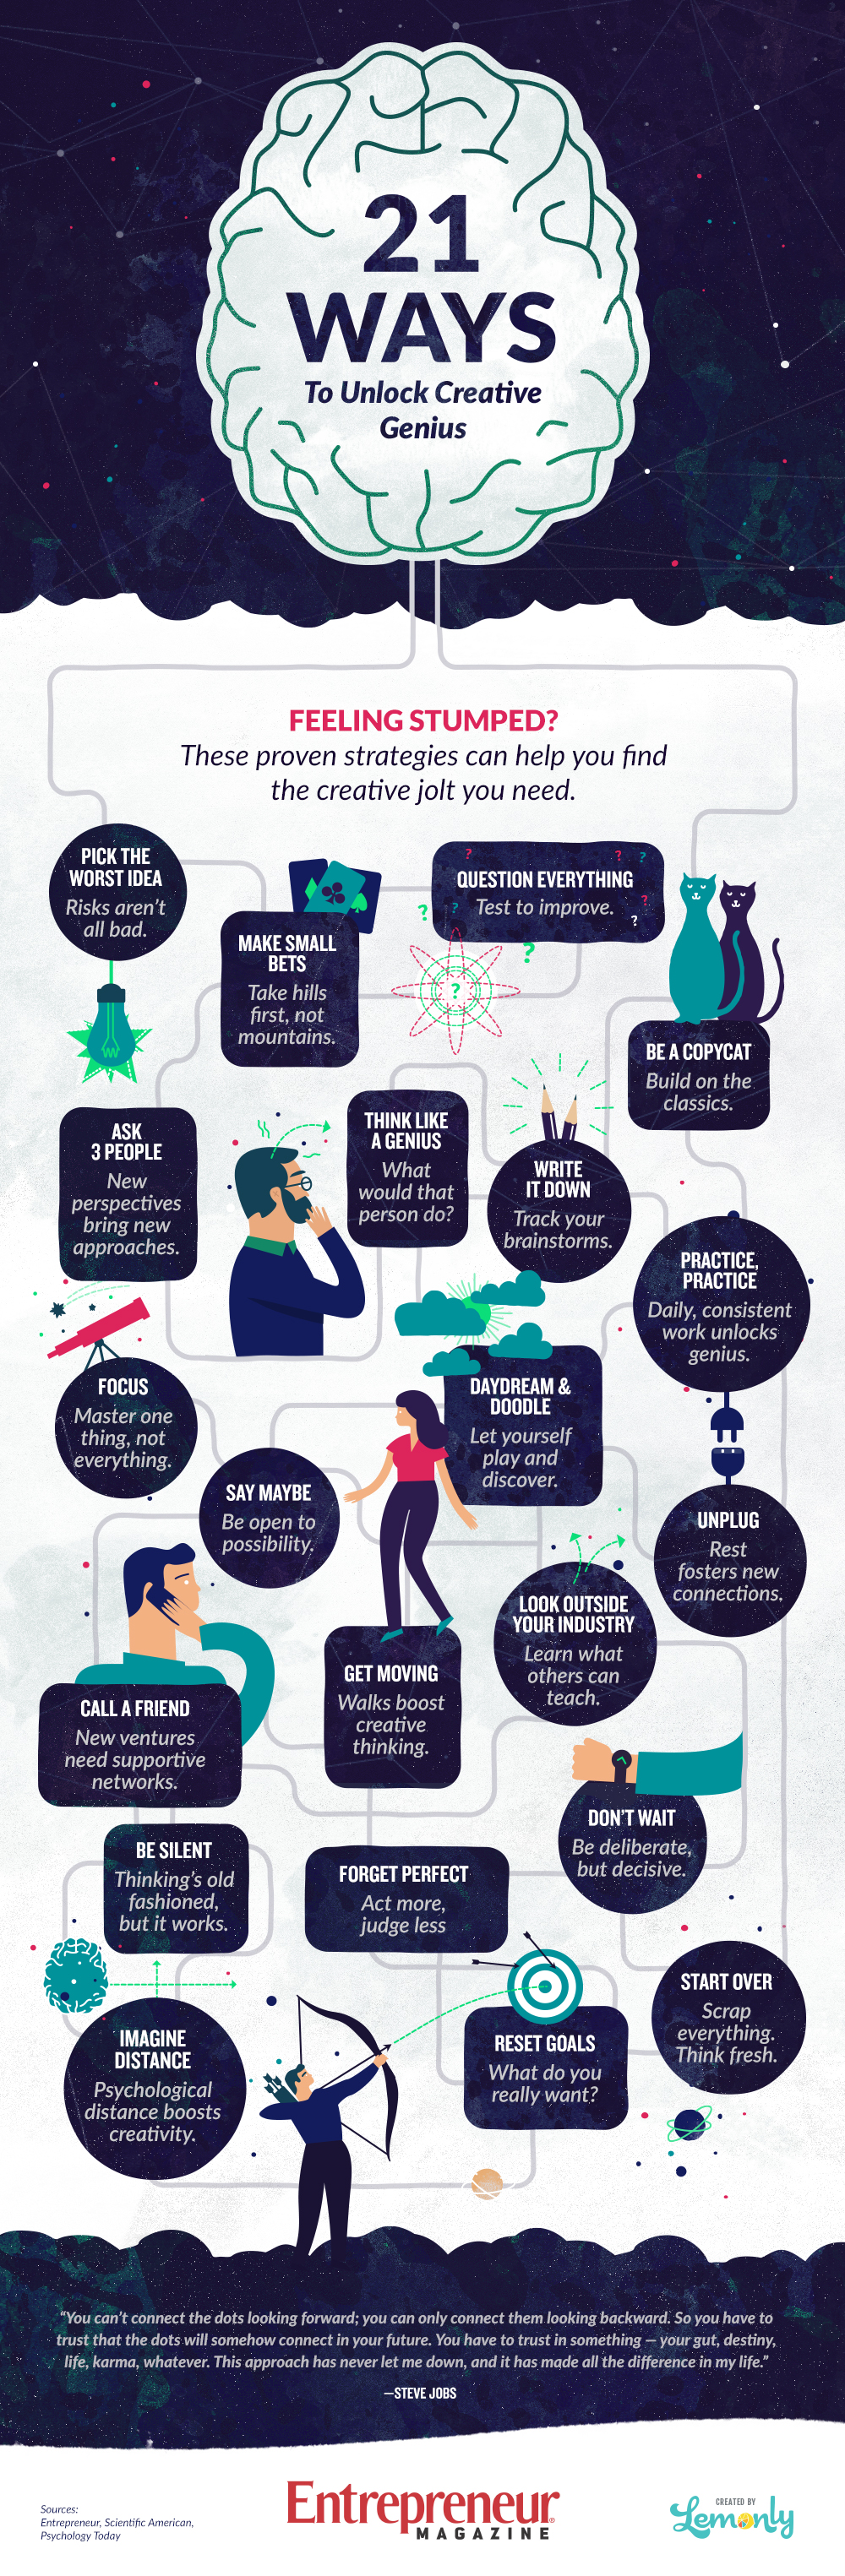 21_ways_to_get_inspired_infographic.jpg